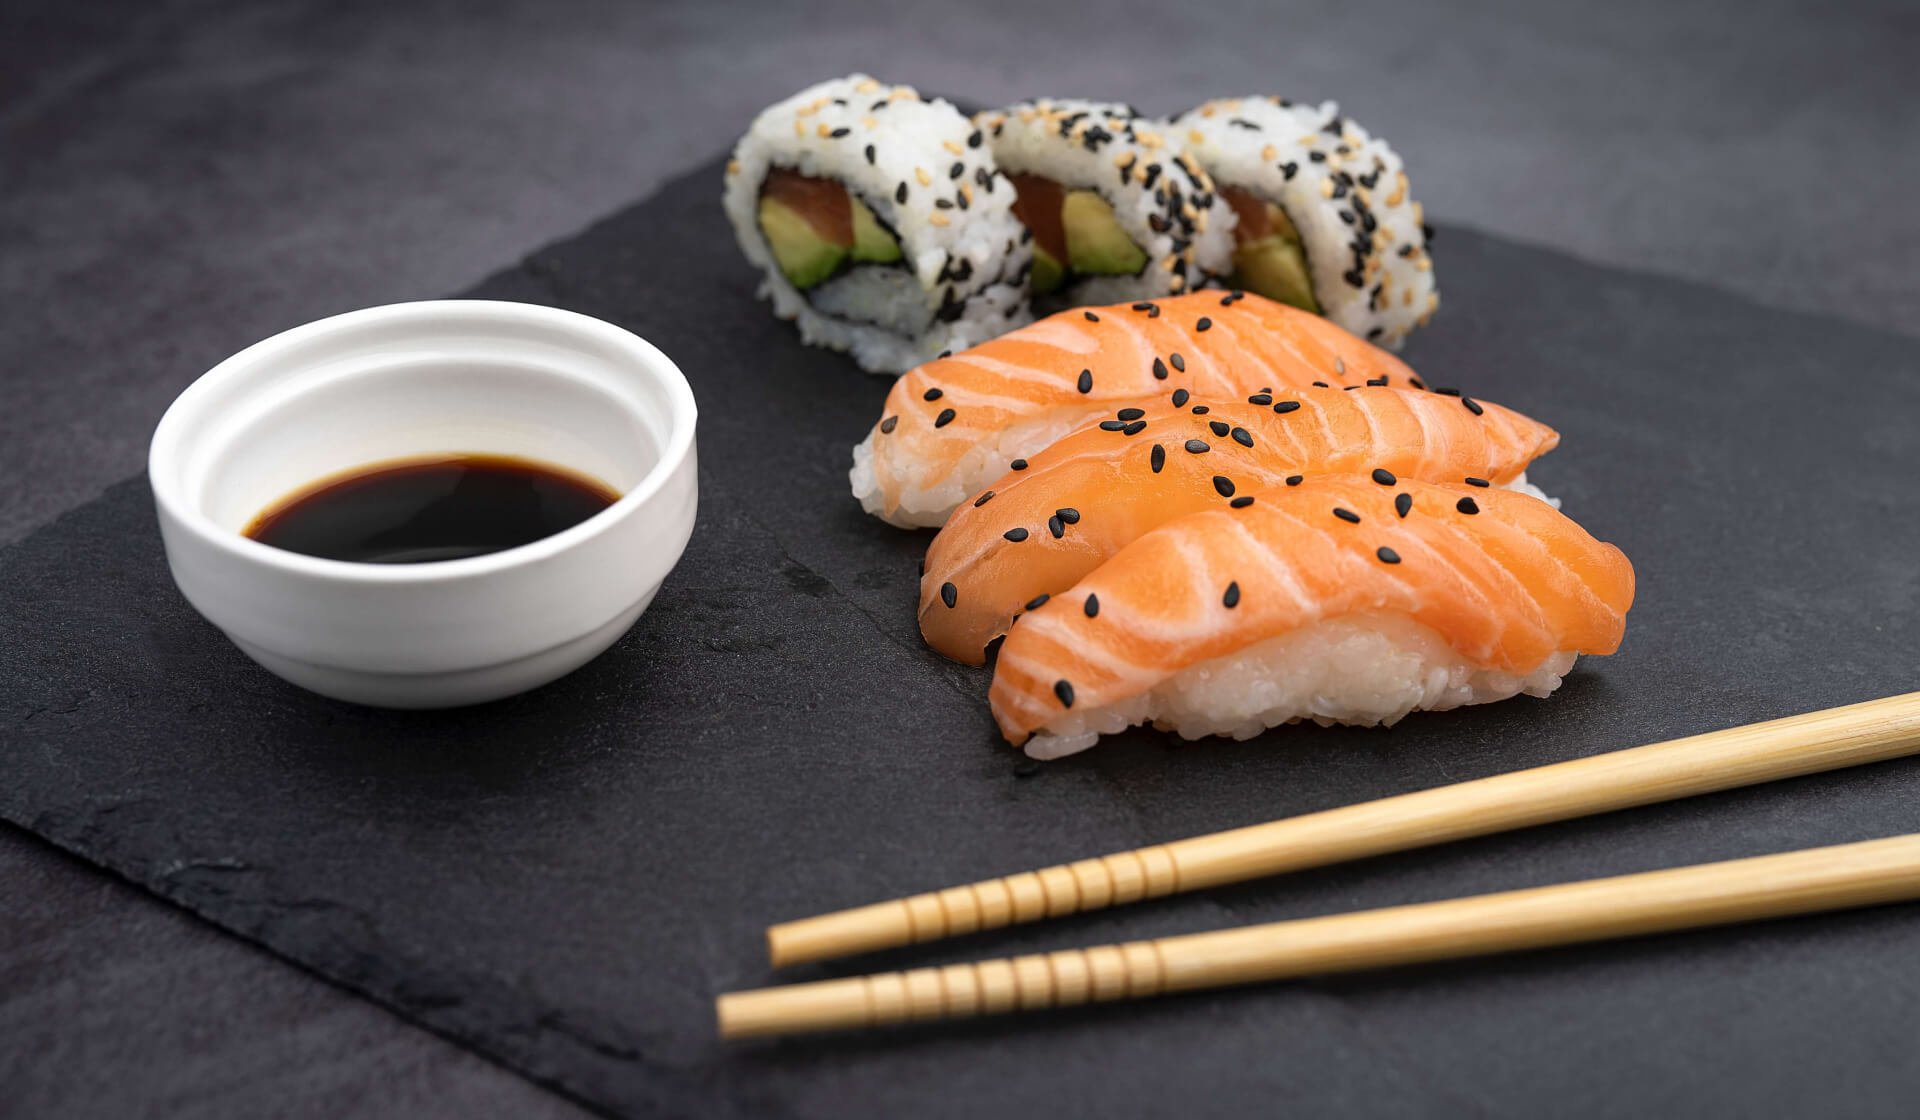 Japanese salmon sushi and a tuna avocado roll on a slate with soy sauce and chopsticks